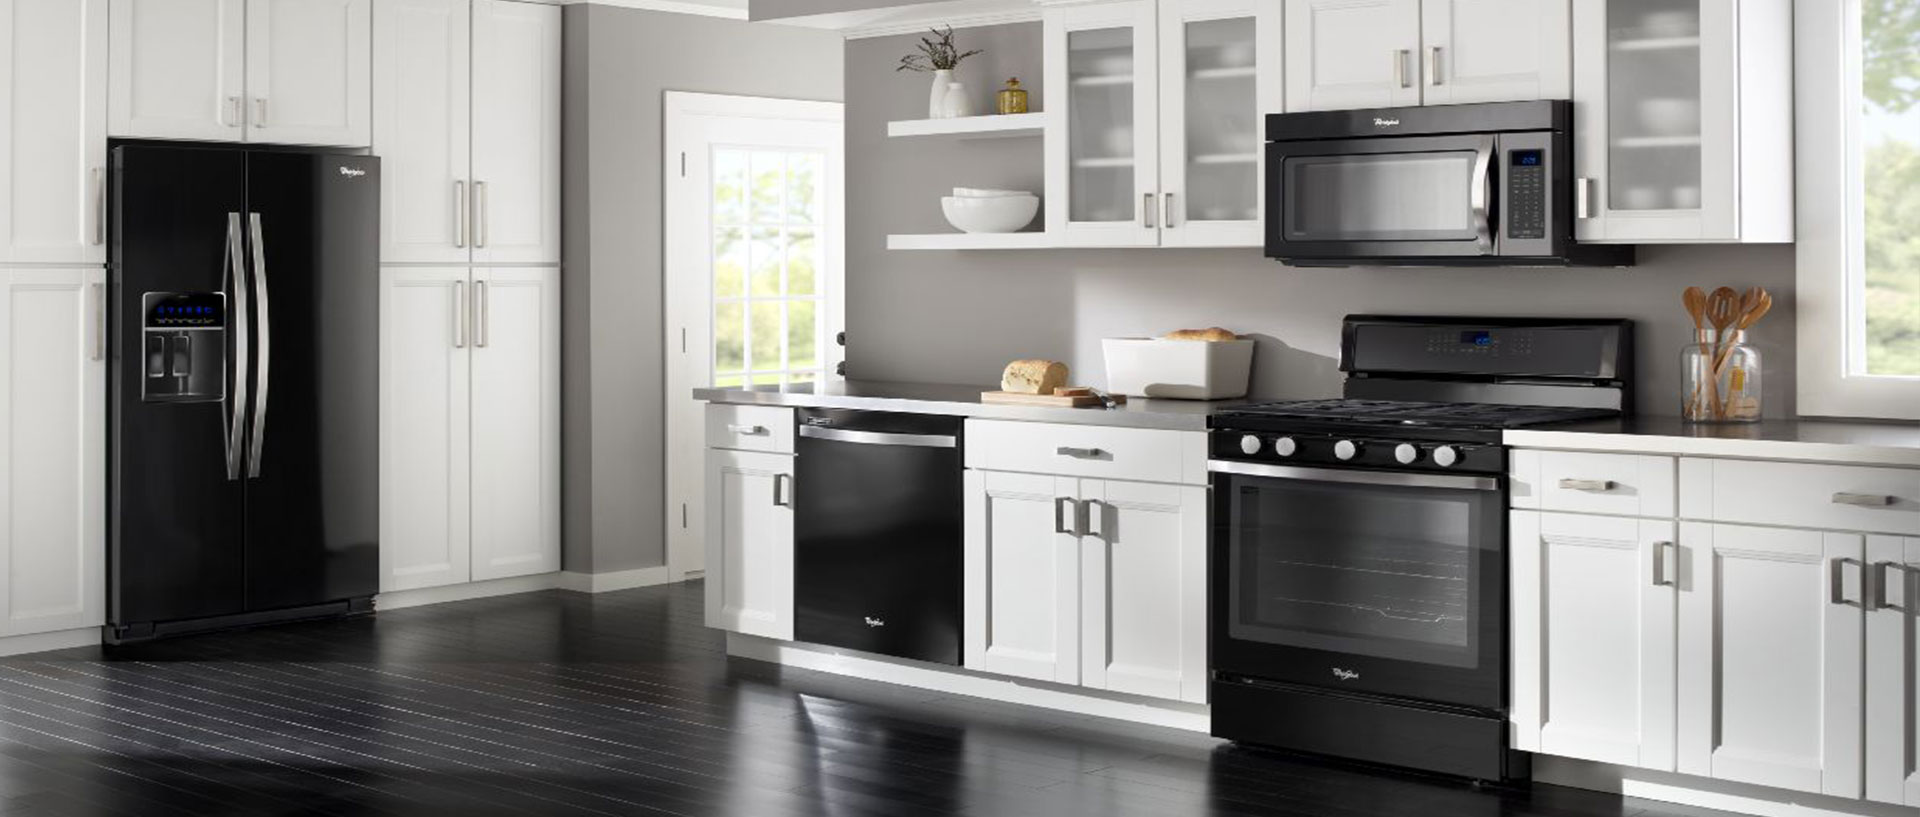 New Kitchen Appliance Colors